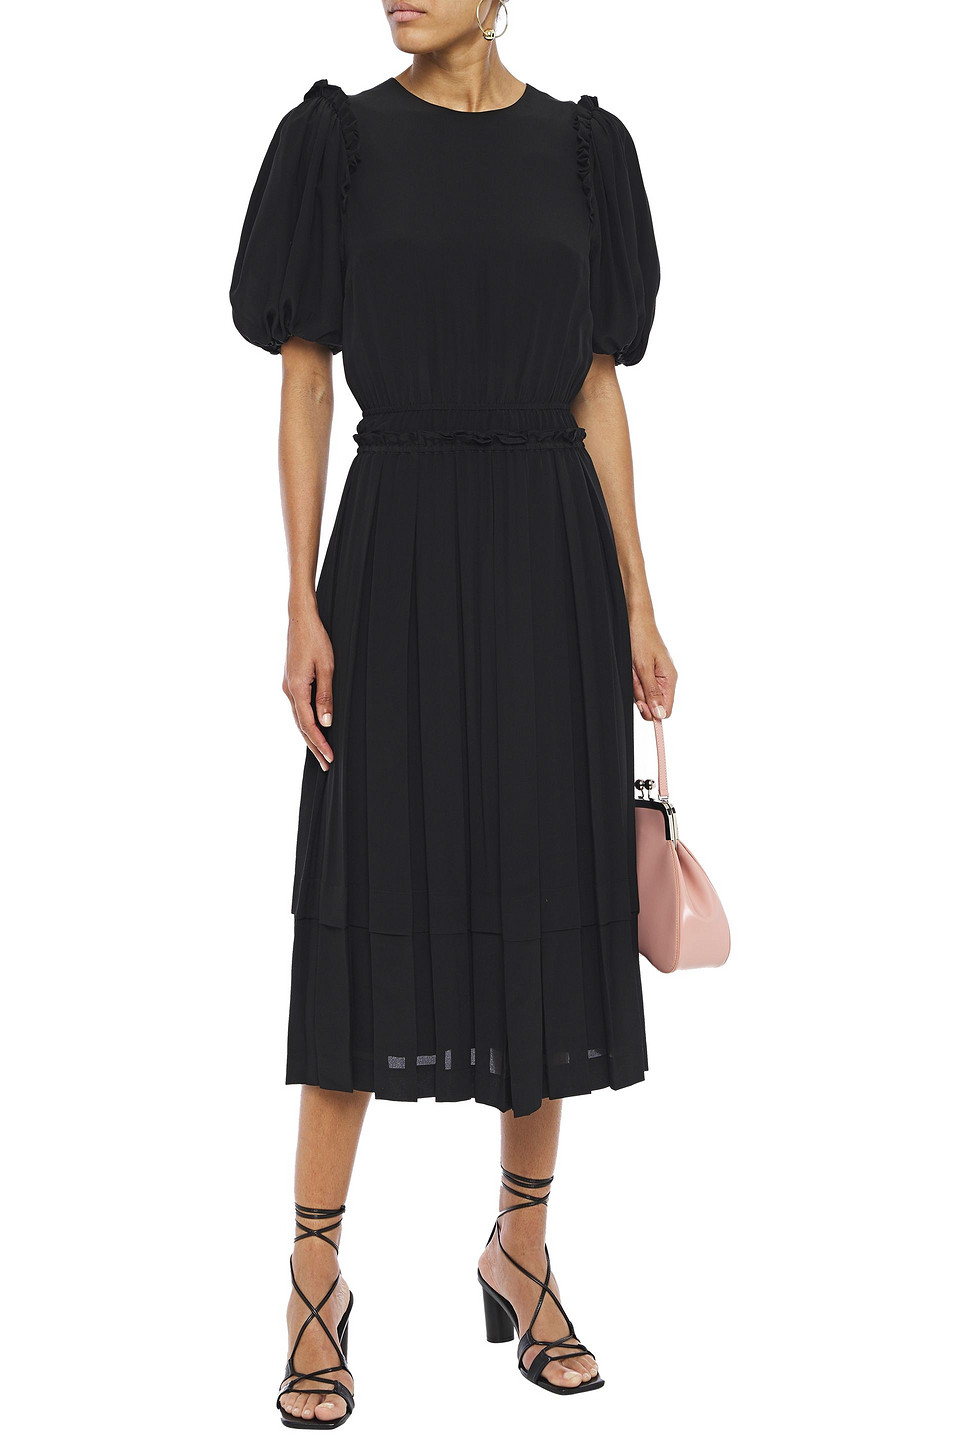 SIMONE ROCHA | Simone Rocha Woman Ruffled Pleated Silk Crepe De Chine Midi Dress Black | Clouty